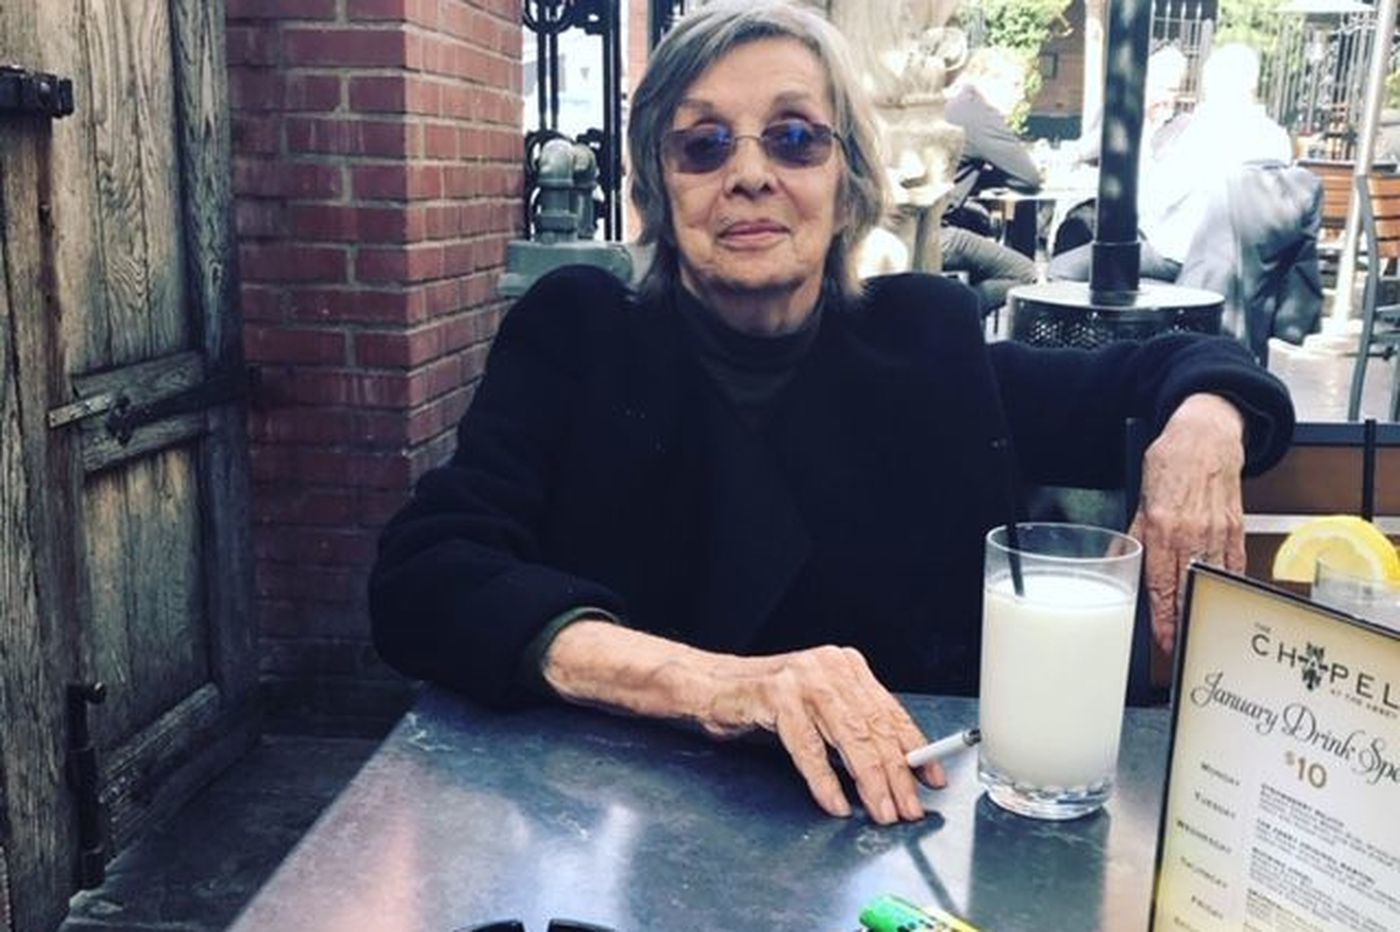 Cathy Apothaker, 89, was a businesswoman and widow of prominent Philadelphia lawyer